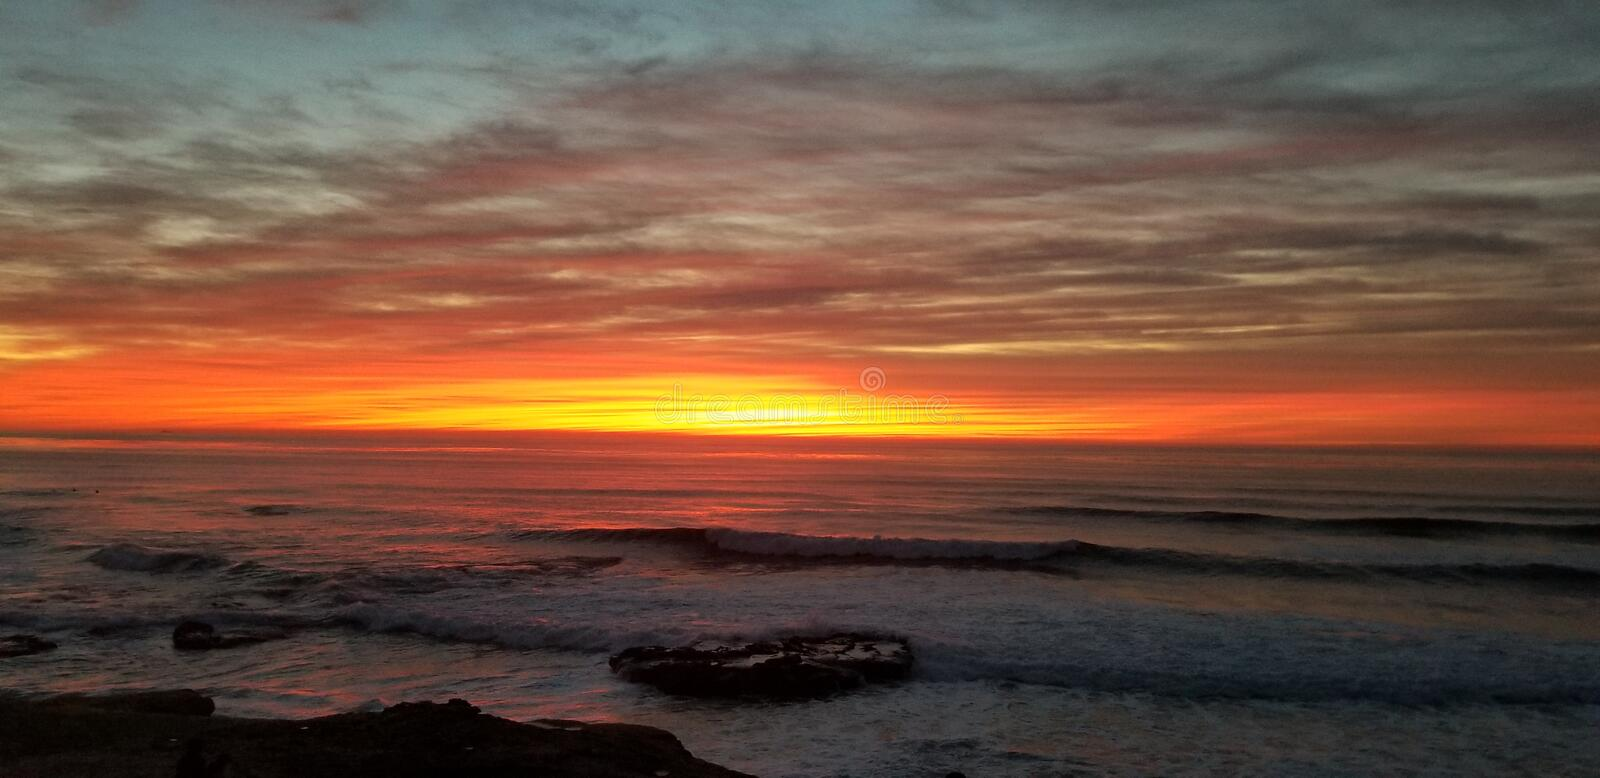 Dramatic Sunset over Pacific Ocean - Waves Crashing on the Rocks royalty free stock photography